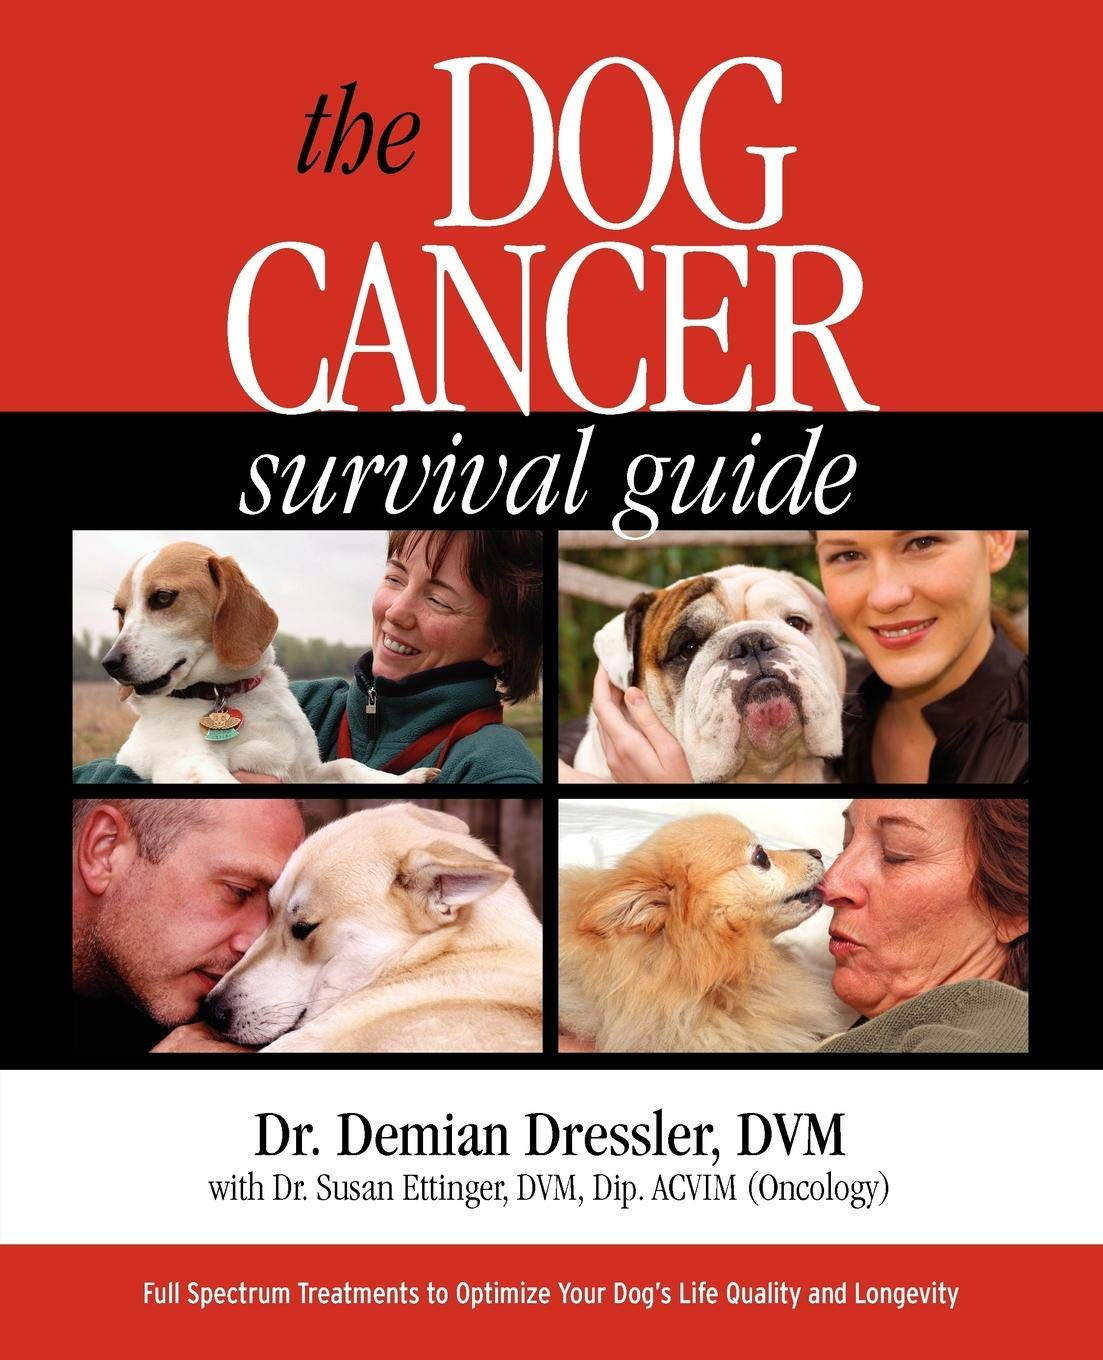 The Dog Cancer Survival Guide: Full Spectrum Treatments to Optimize Your Dog's Life Quality and Longevity by Functional Nutriments